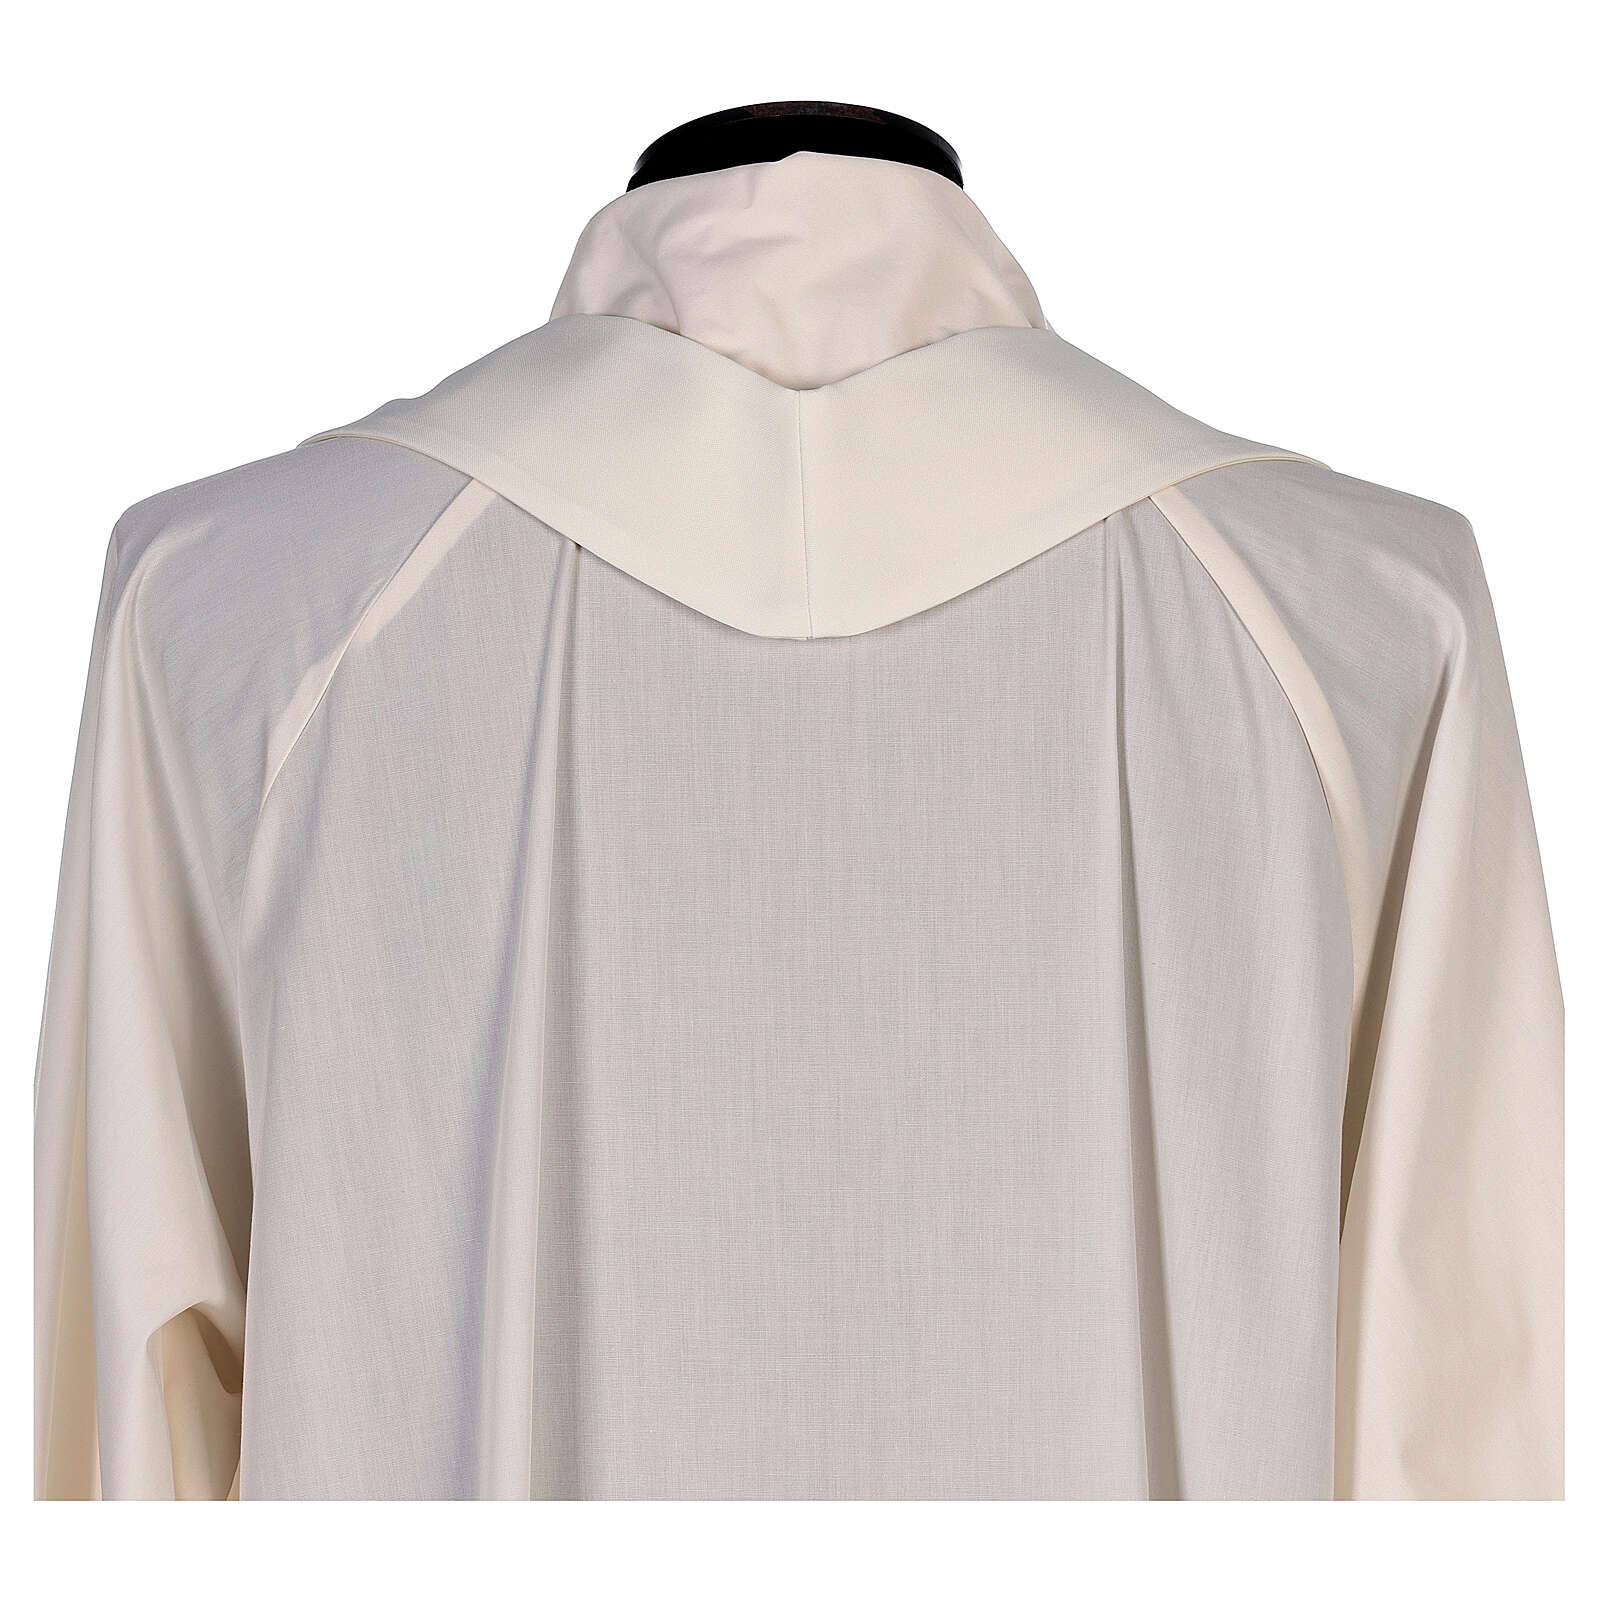 Chasuble with sublimation lilies V-neck print 100% polyester 4